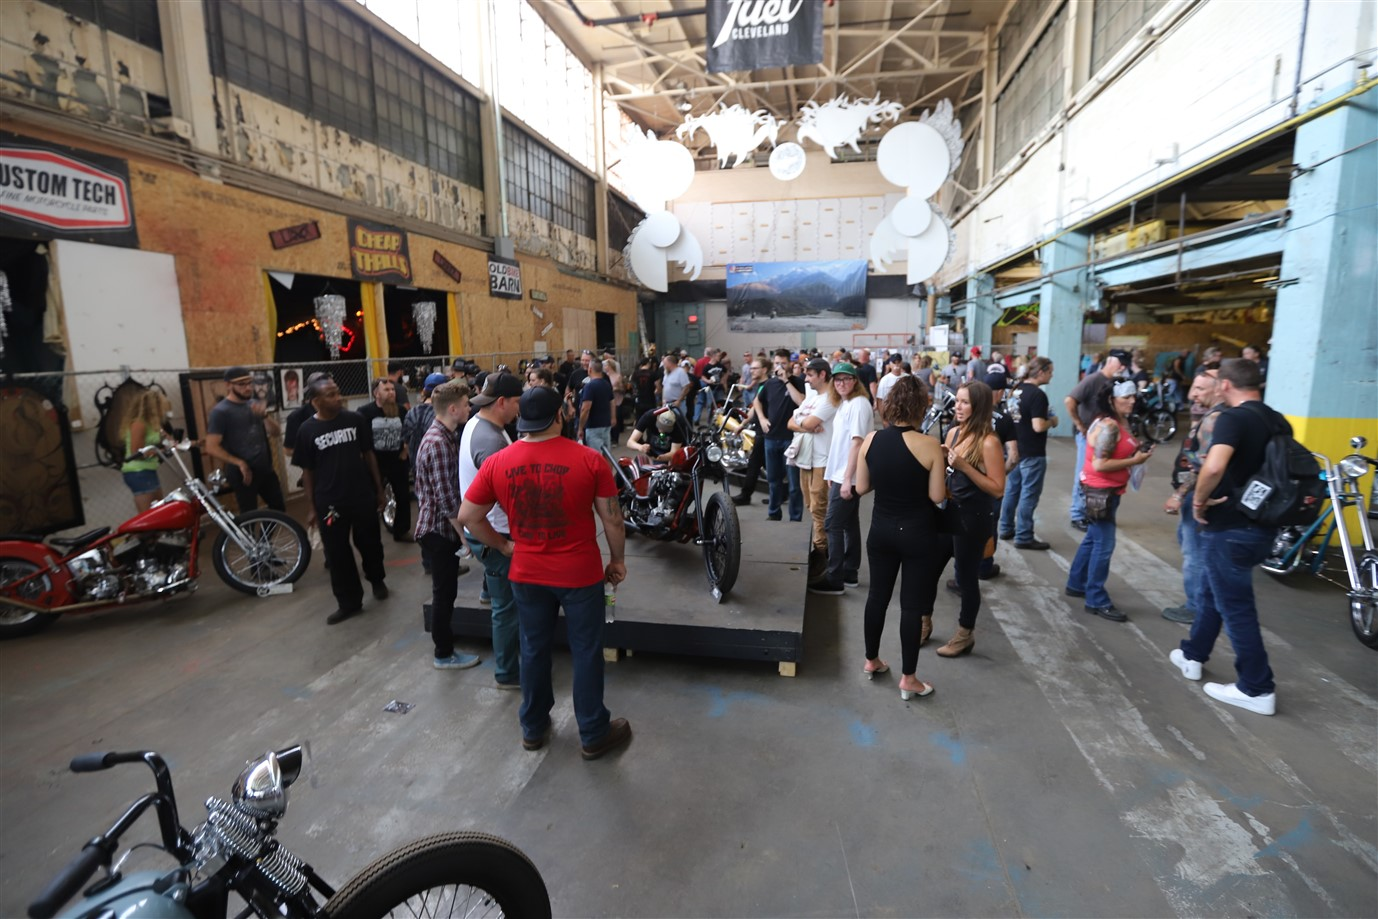 2018 07 28 116 Cleveland Fuel Motorcycle & Art Show.jpg